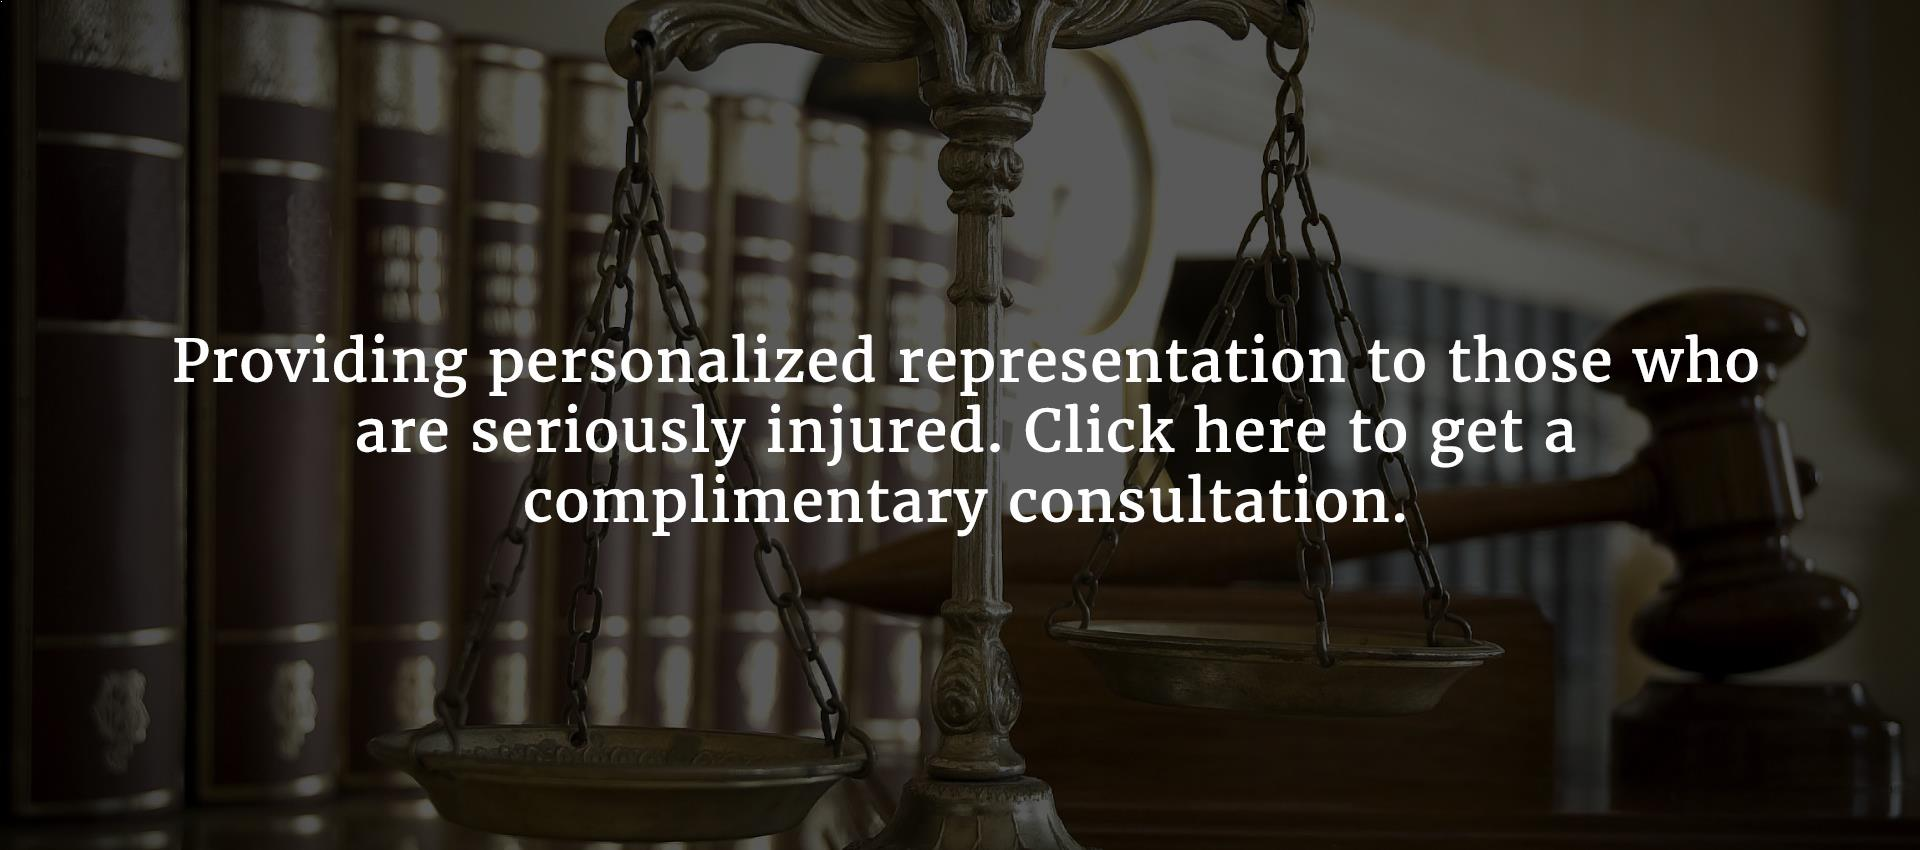 Get a complimentary motor vehicle accident attorney consultation